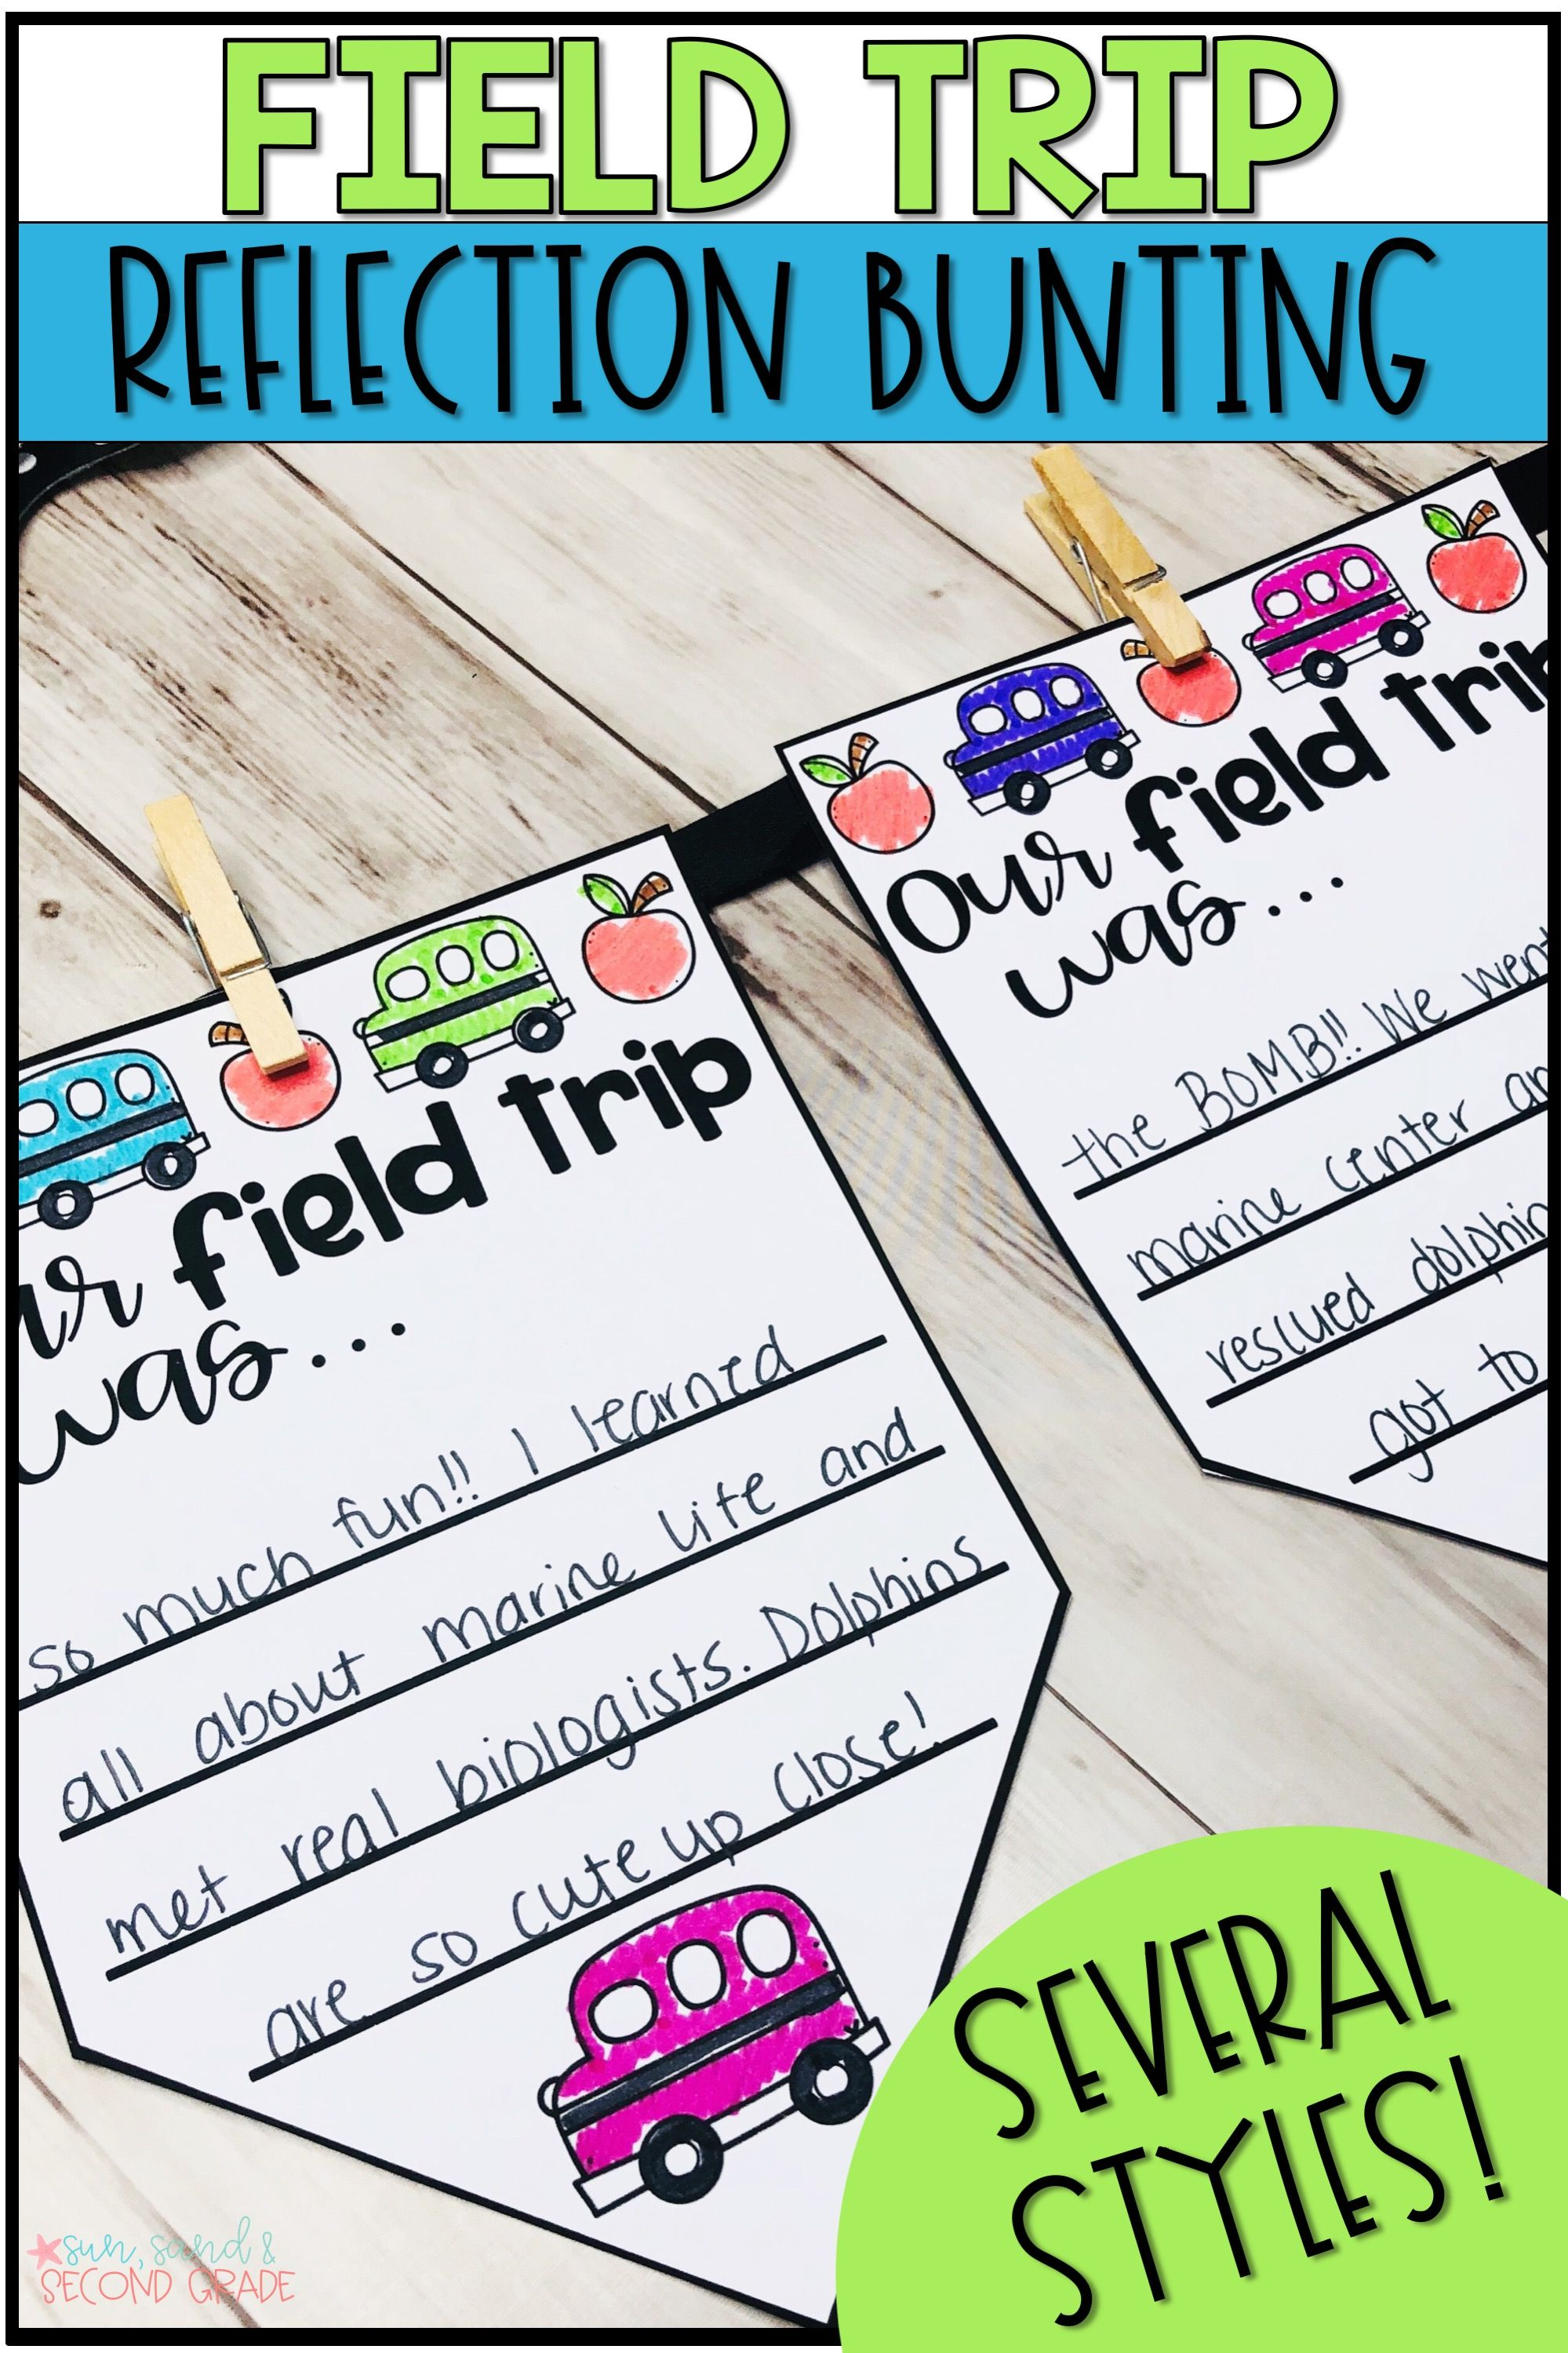 Field Trip Reflection Bunting Banner With Images